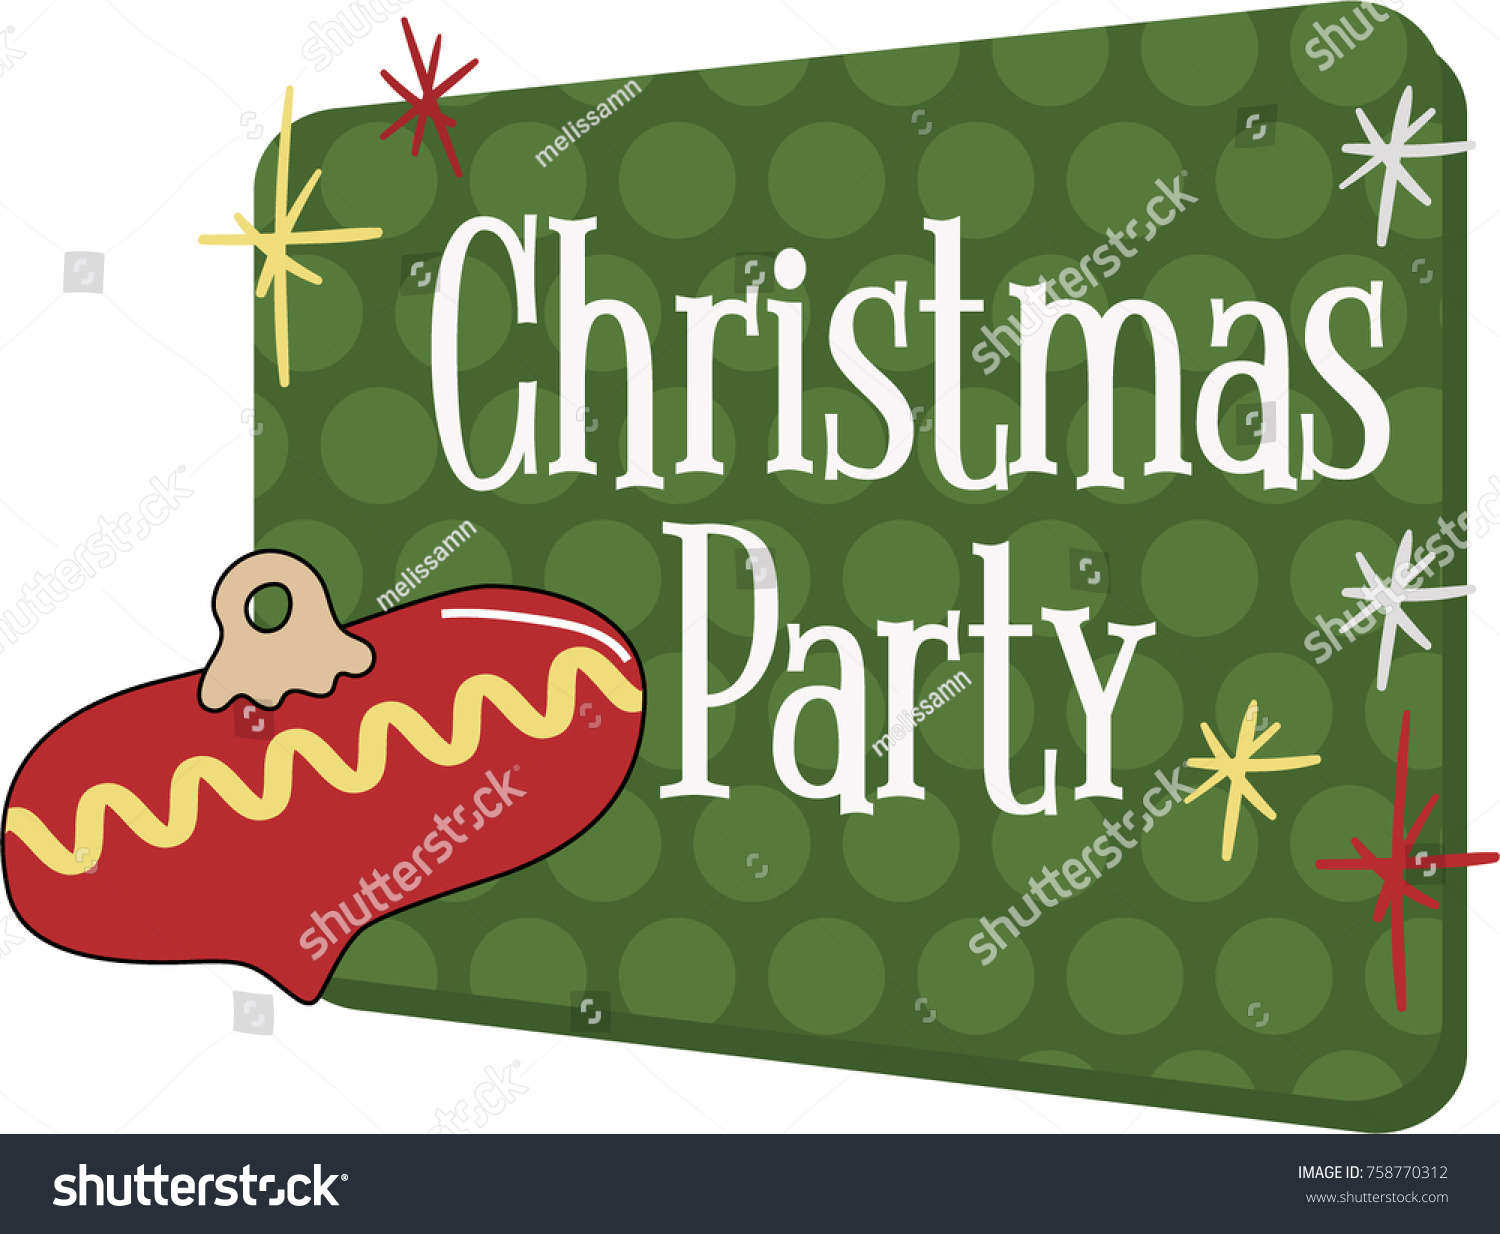 Christmas Party Invitation Vector Graphic Vintage Stock Vector ...